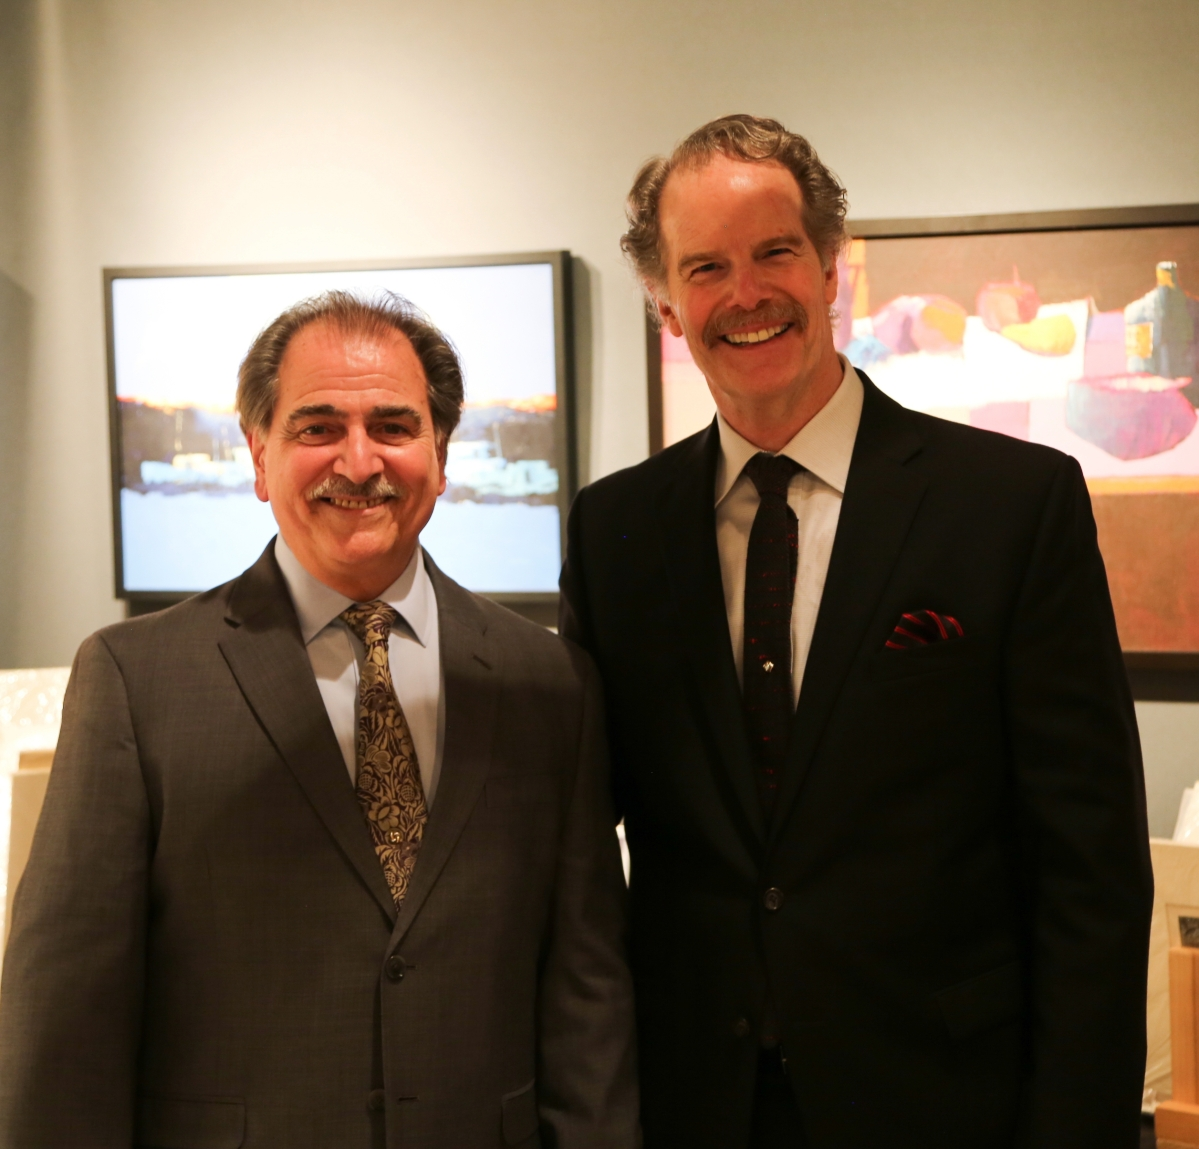 Tony Fusco, left, and Robert Four, celebrate the 10th anniversary of AD20/21 at the opening night gala.